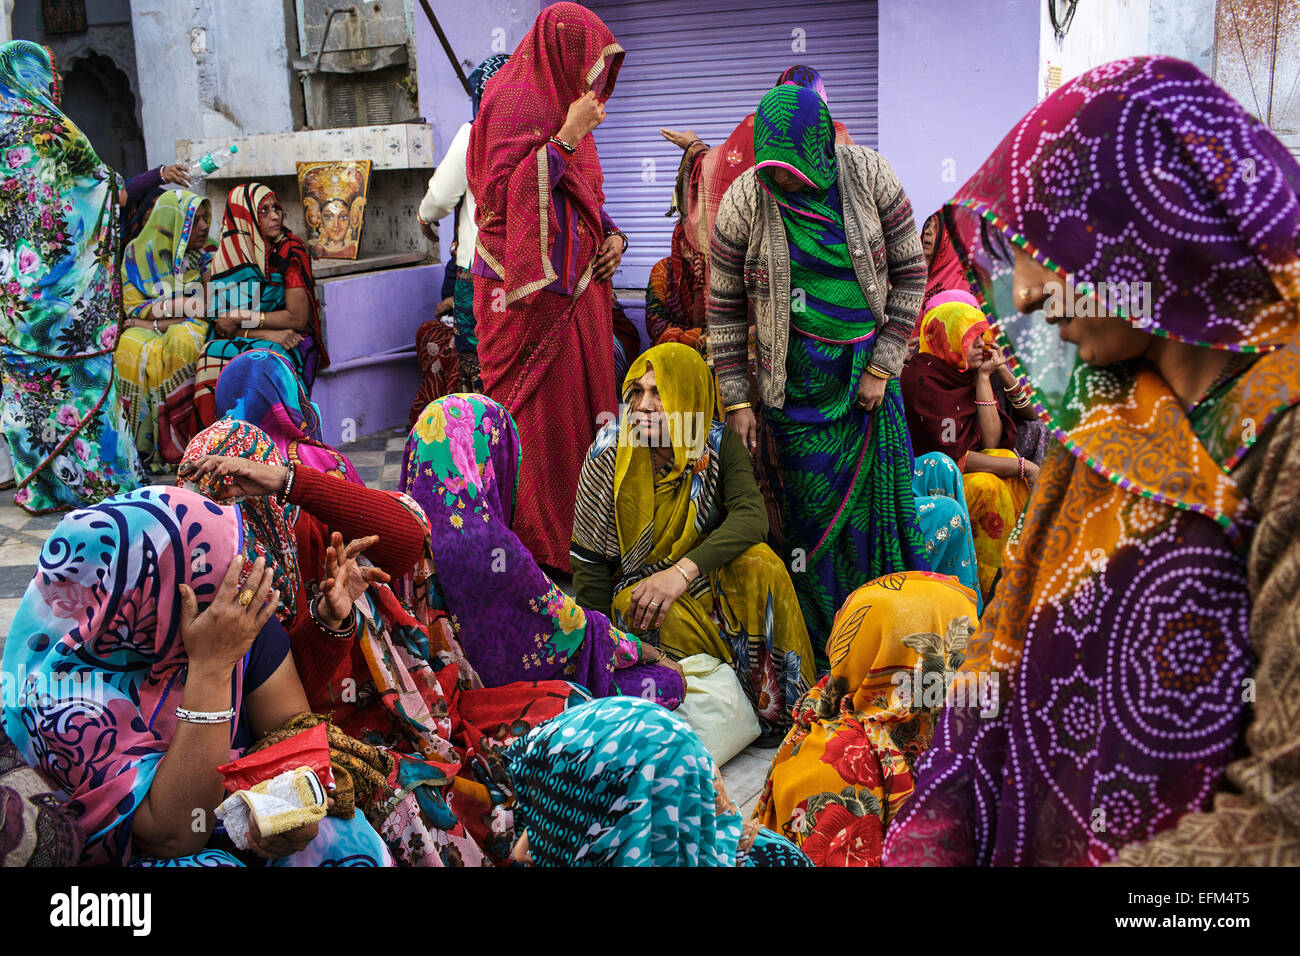 A group of colorfully dressed women mourning a death of a person in Pushkar, Rajasthan, India - Stock Image